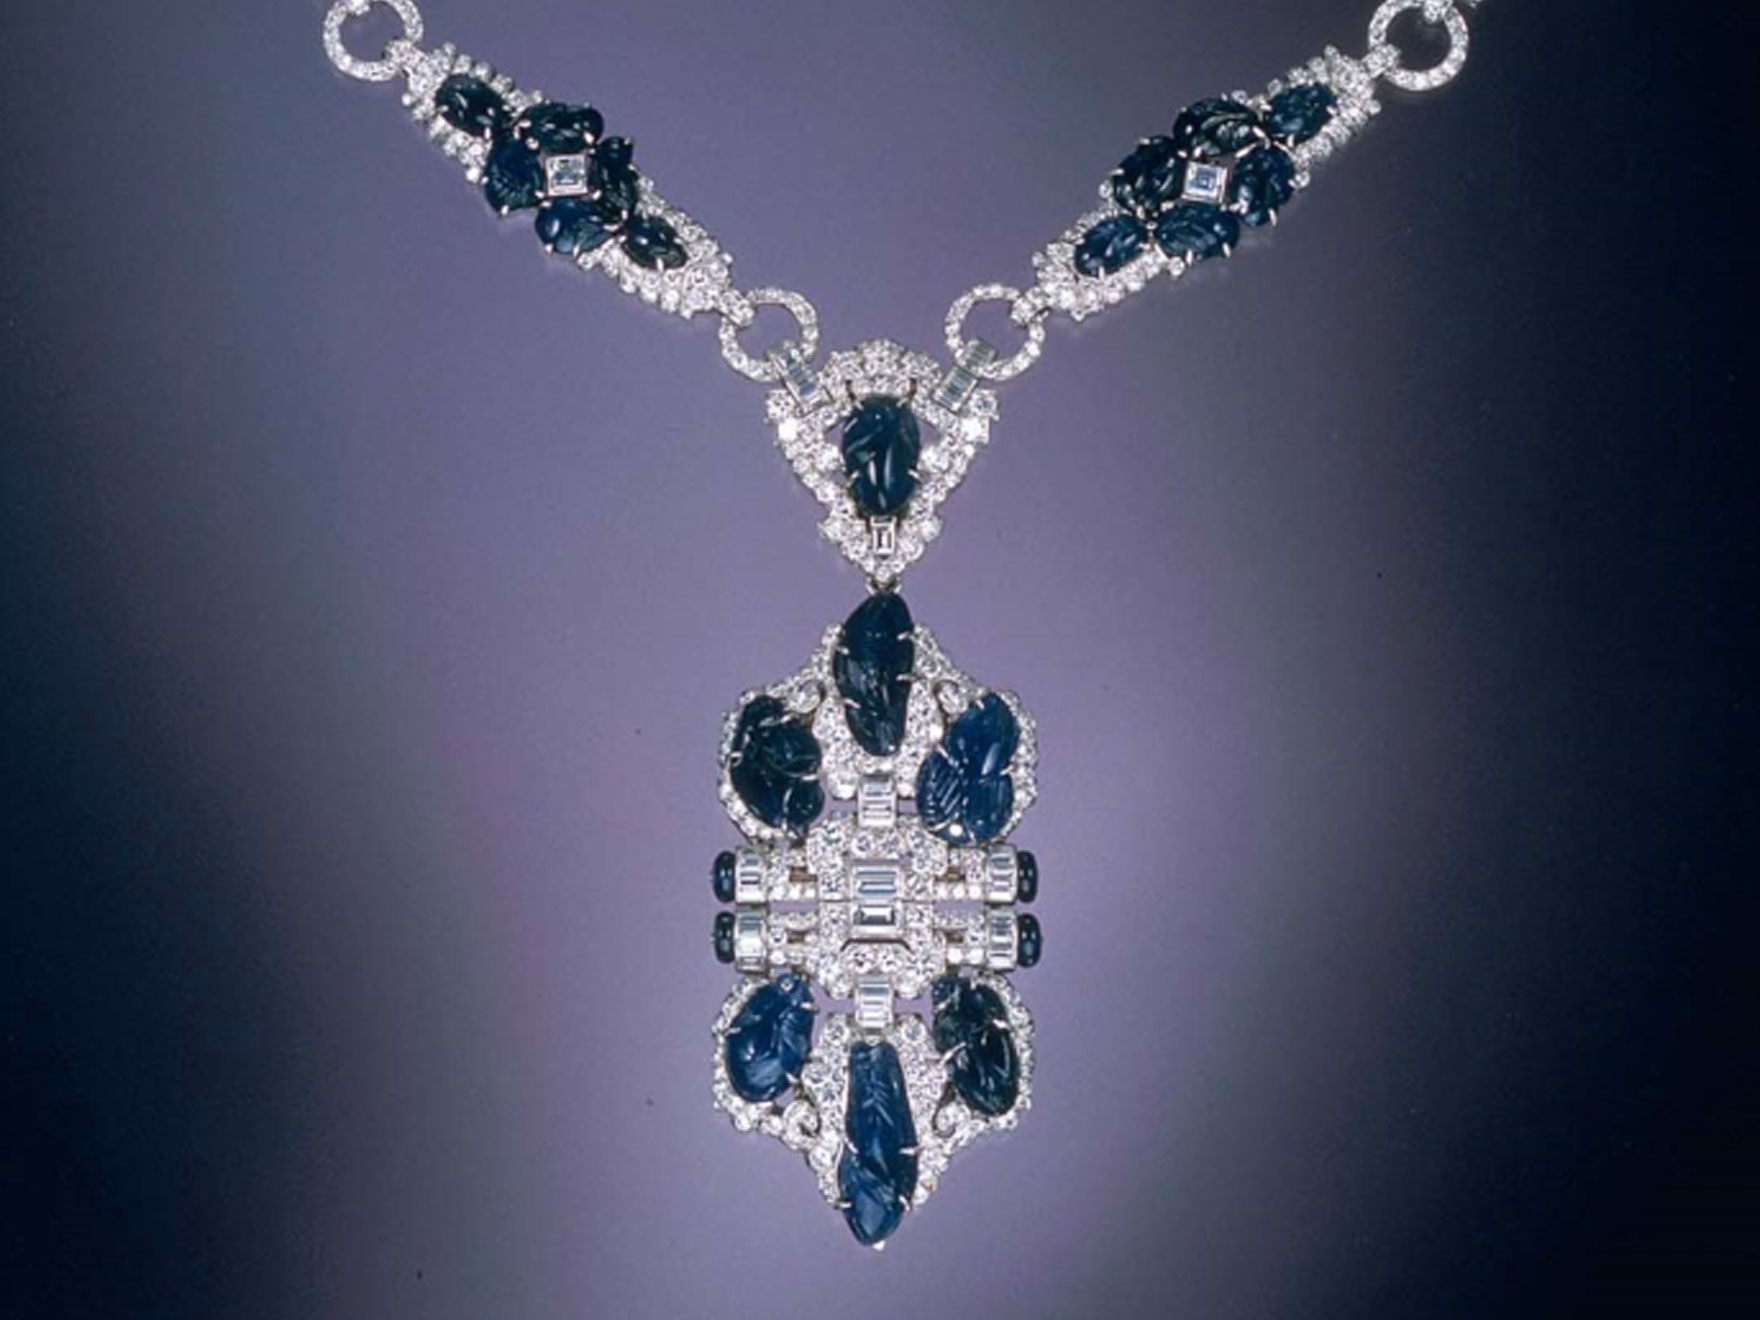 Platinum, engraved sapphire, and diamond necklace by Trabert & Hoeffer, Inc.-Mauboussin and worn by June Knight